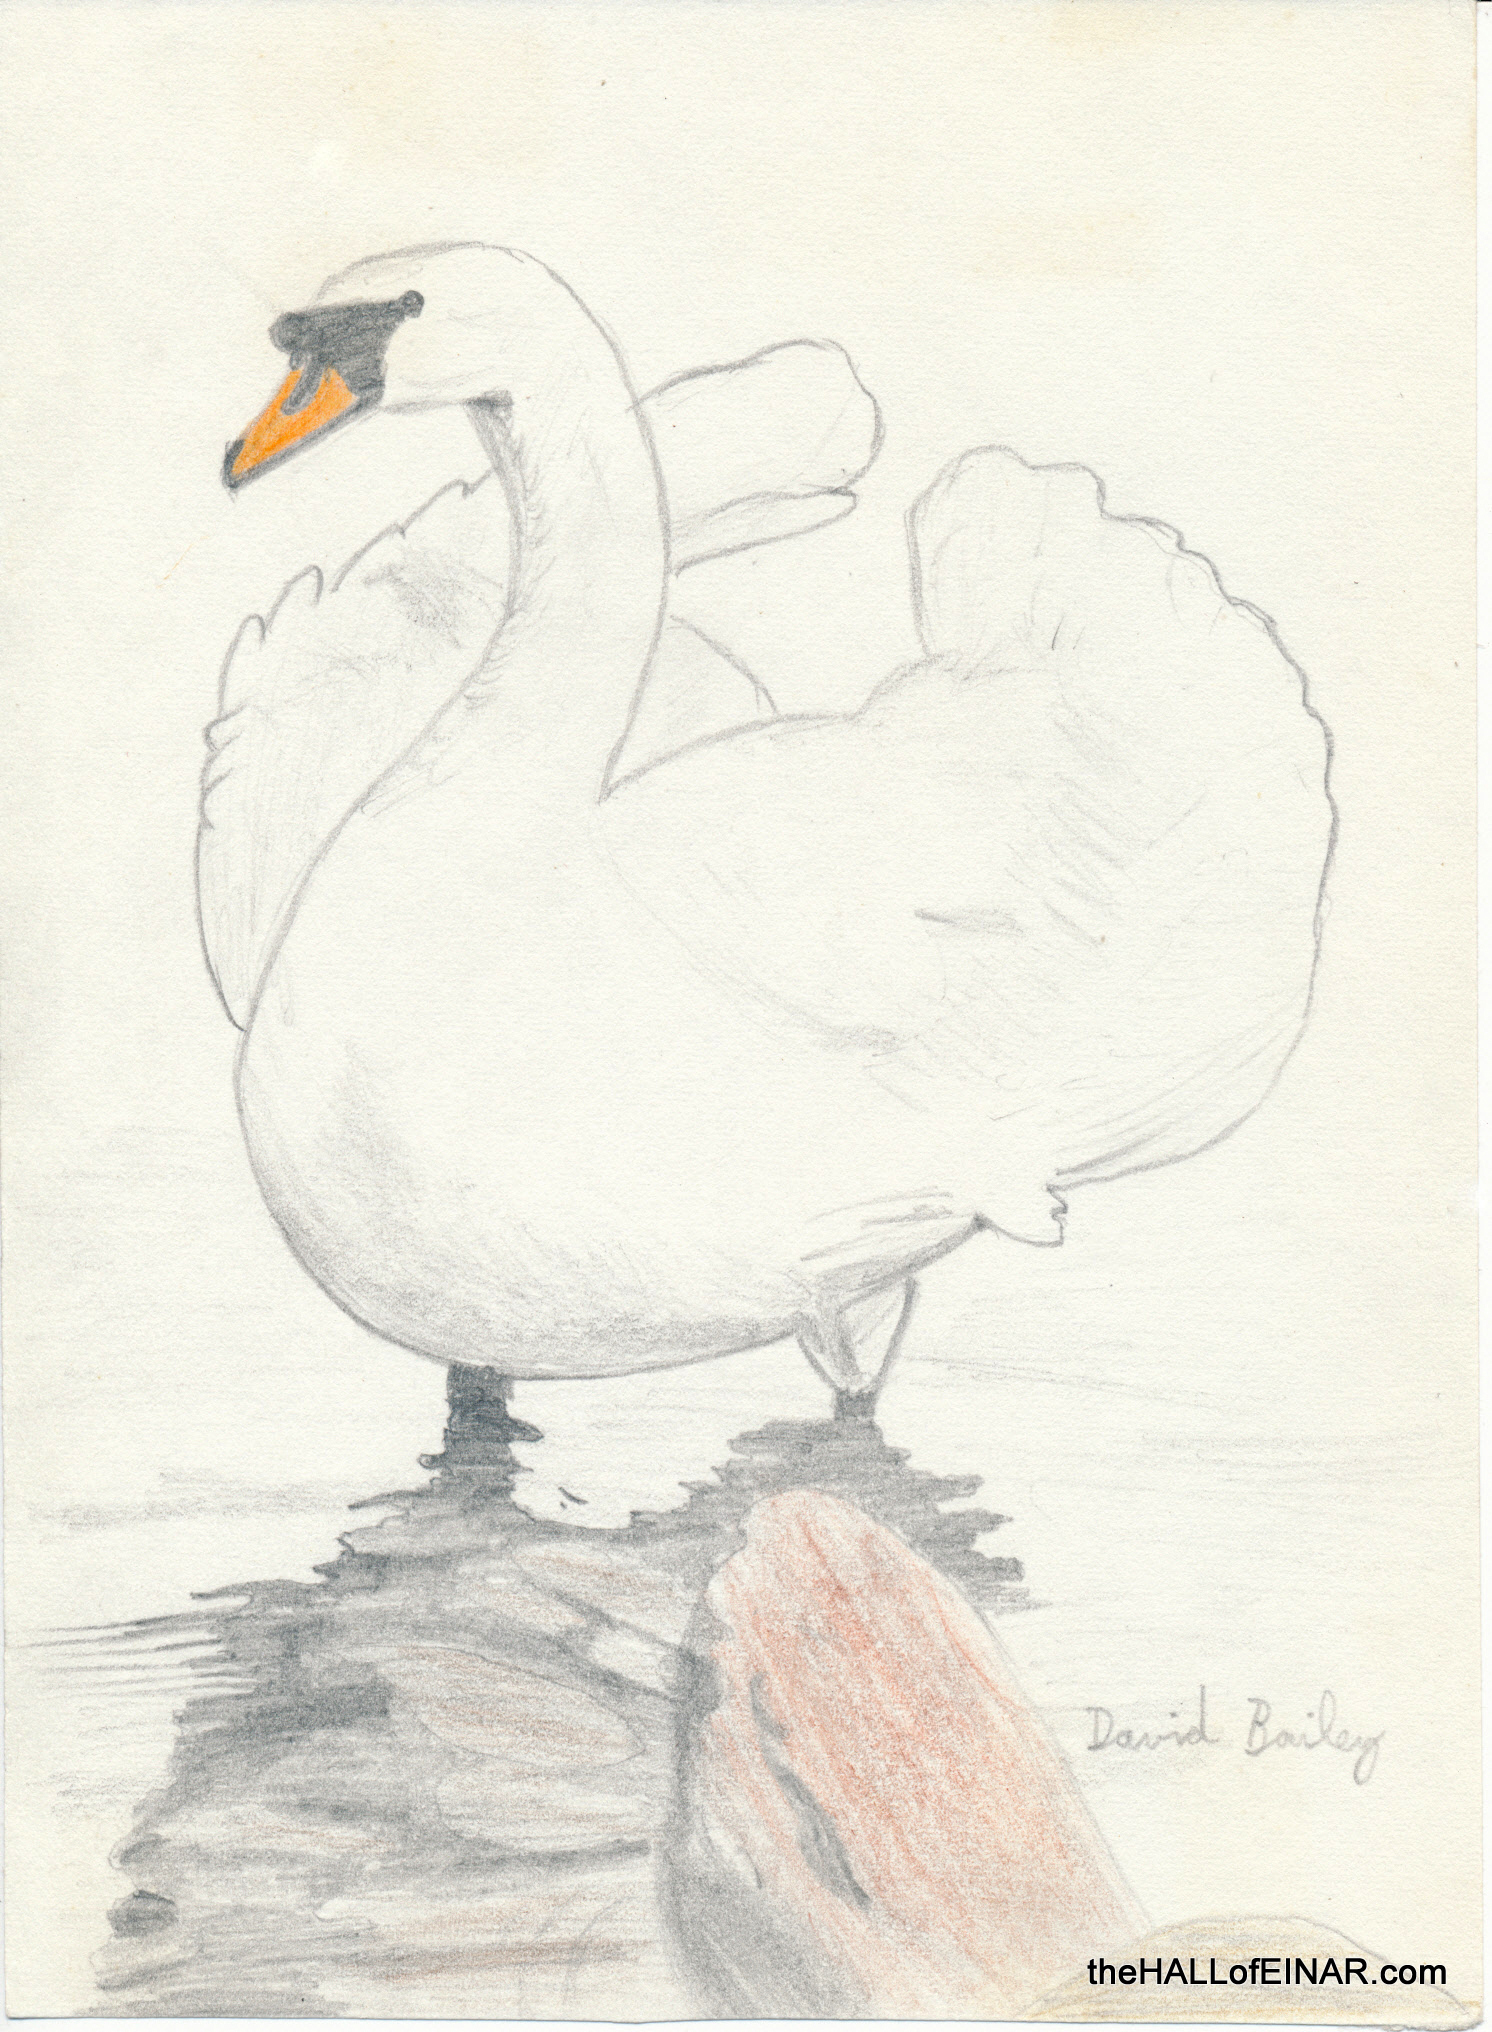 Mute Swan - The Hall of Einar - photograph (c) 2016 David Bailey (not the)